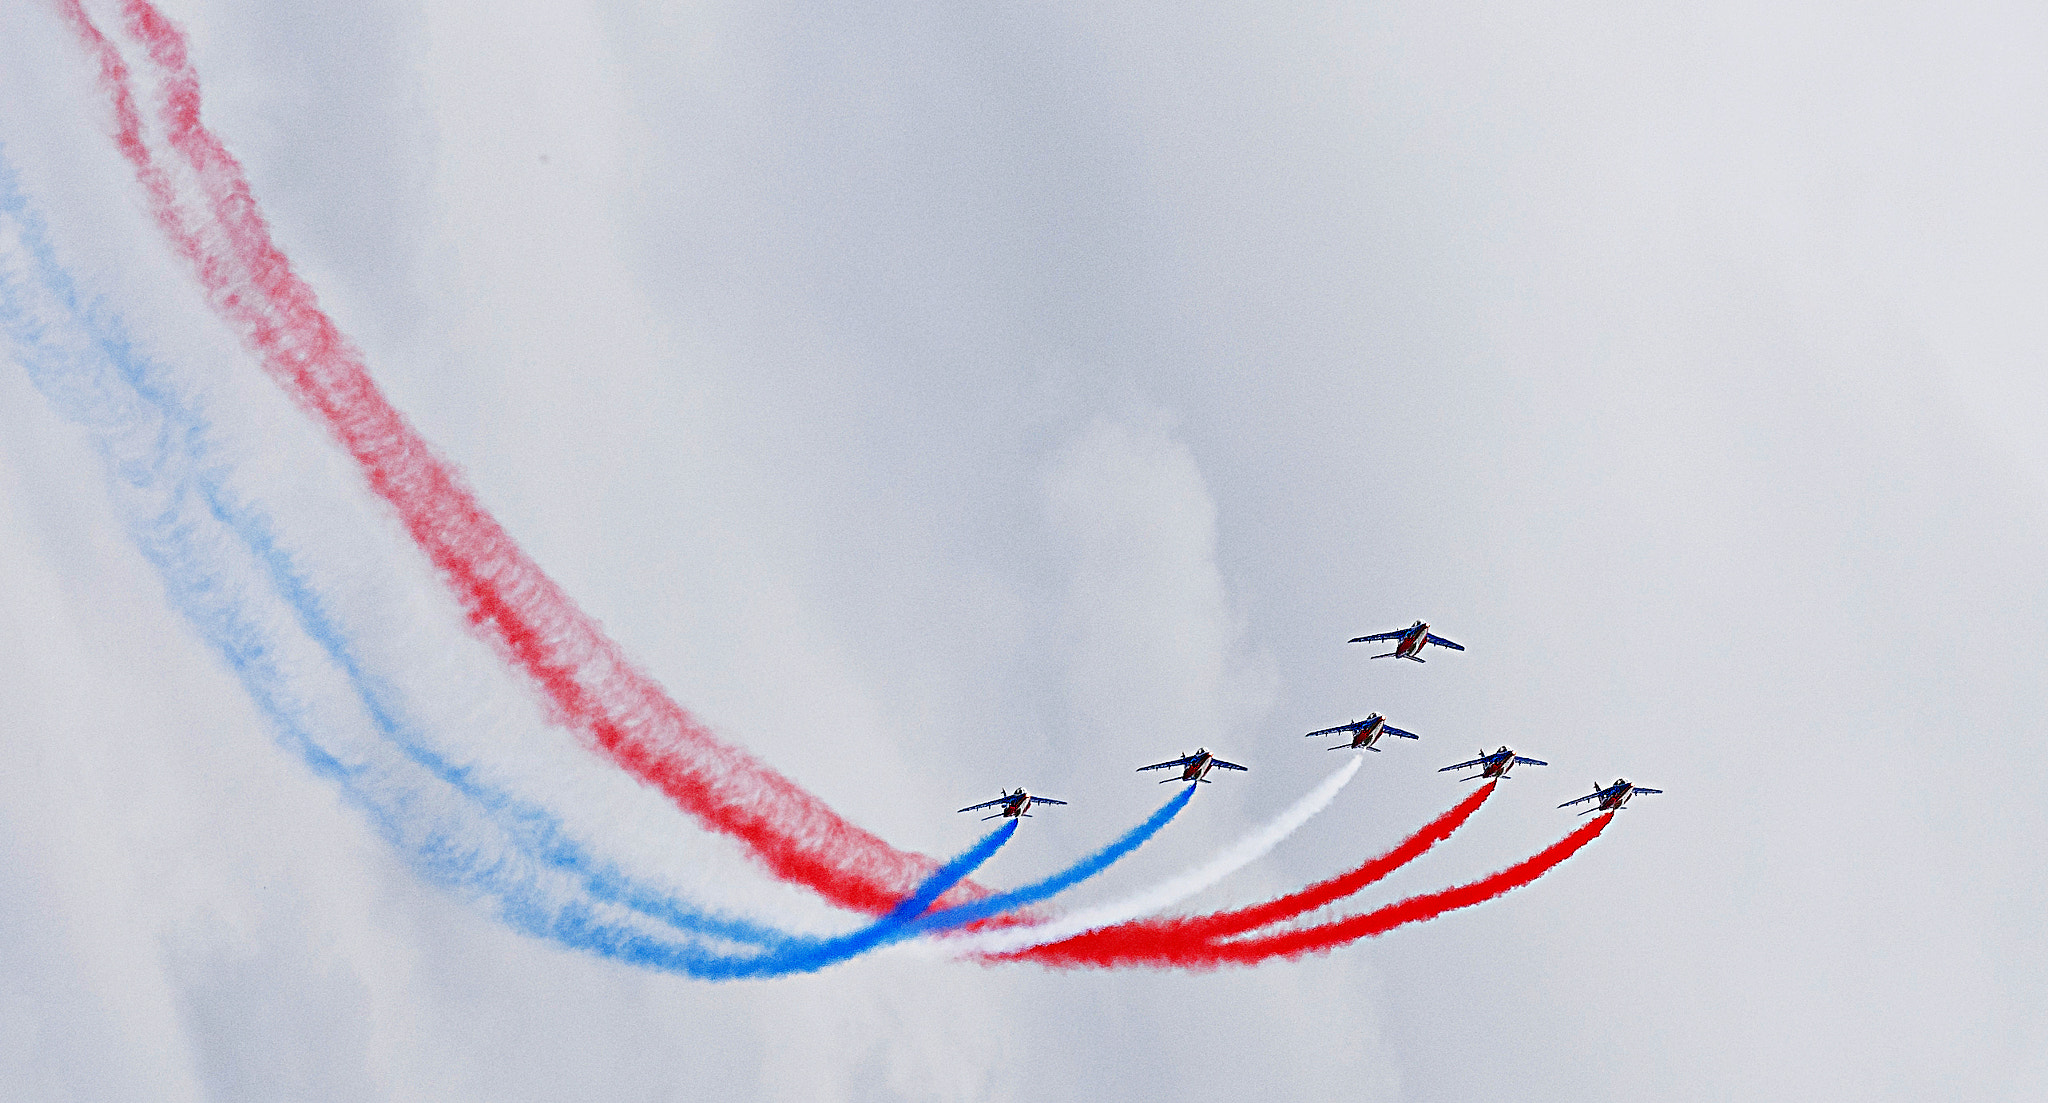 Photograph Patrouille de France by Øyvind Andersen on 500px